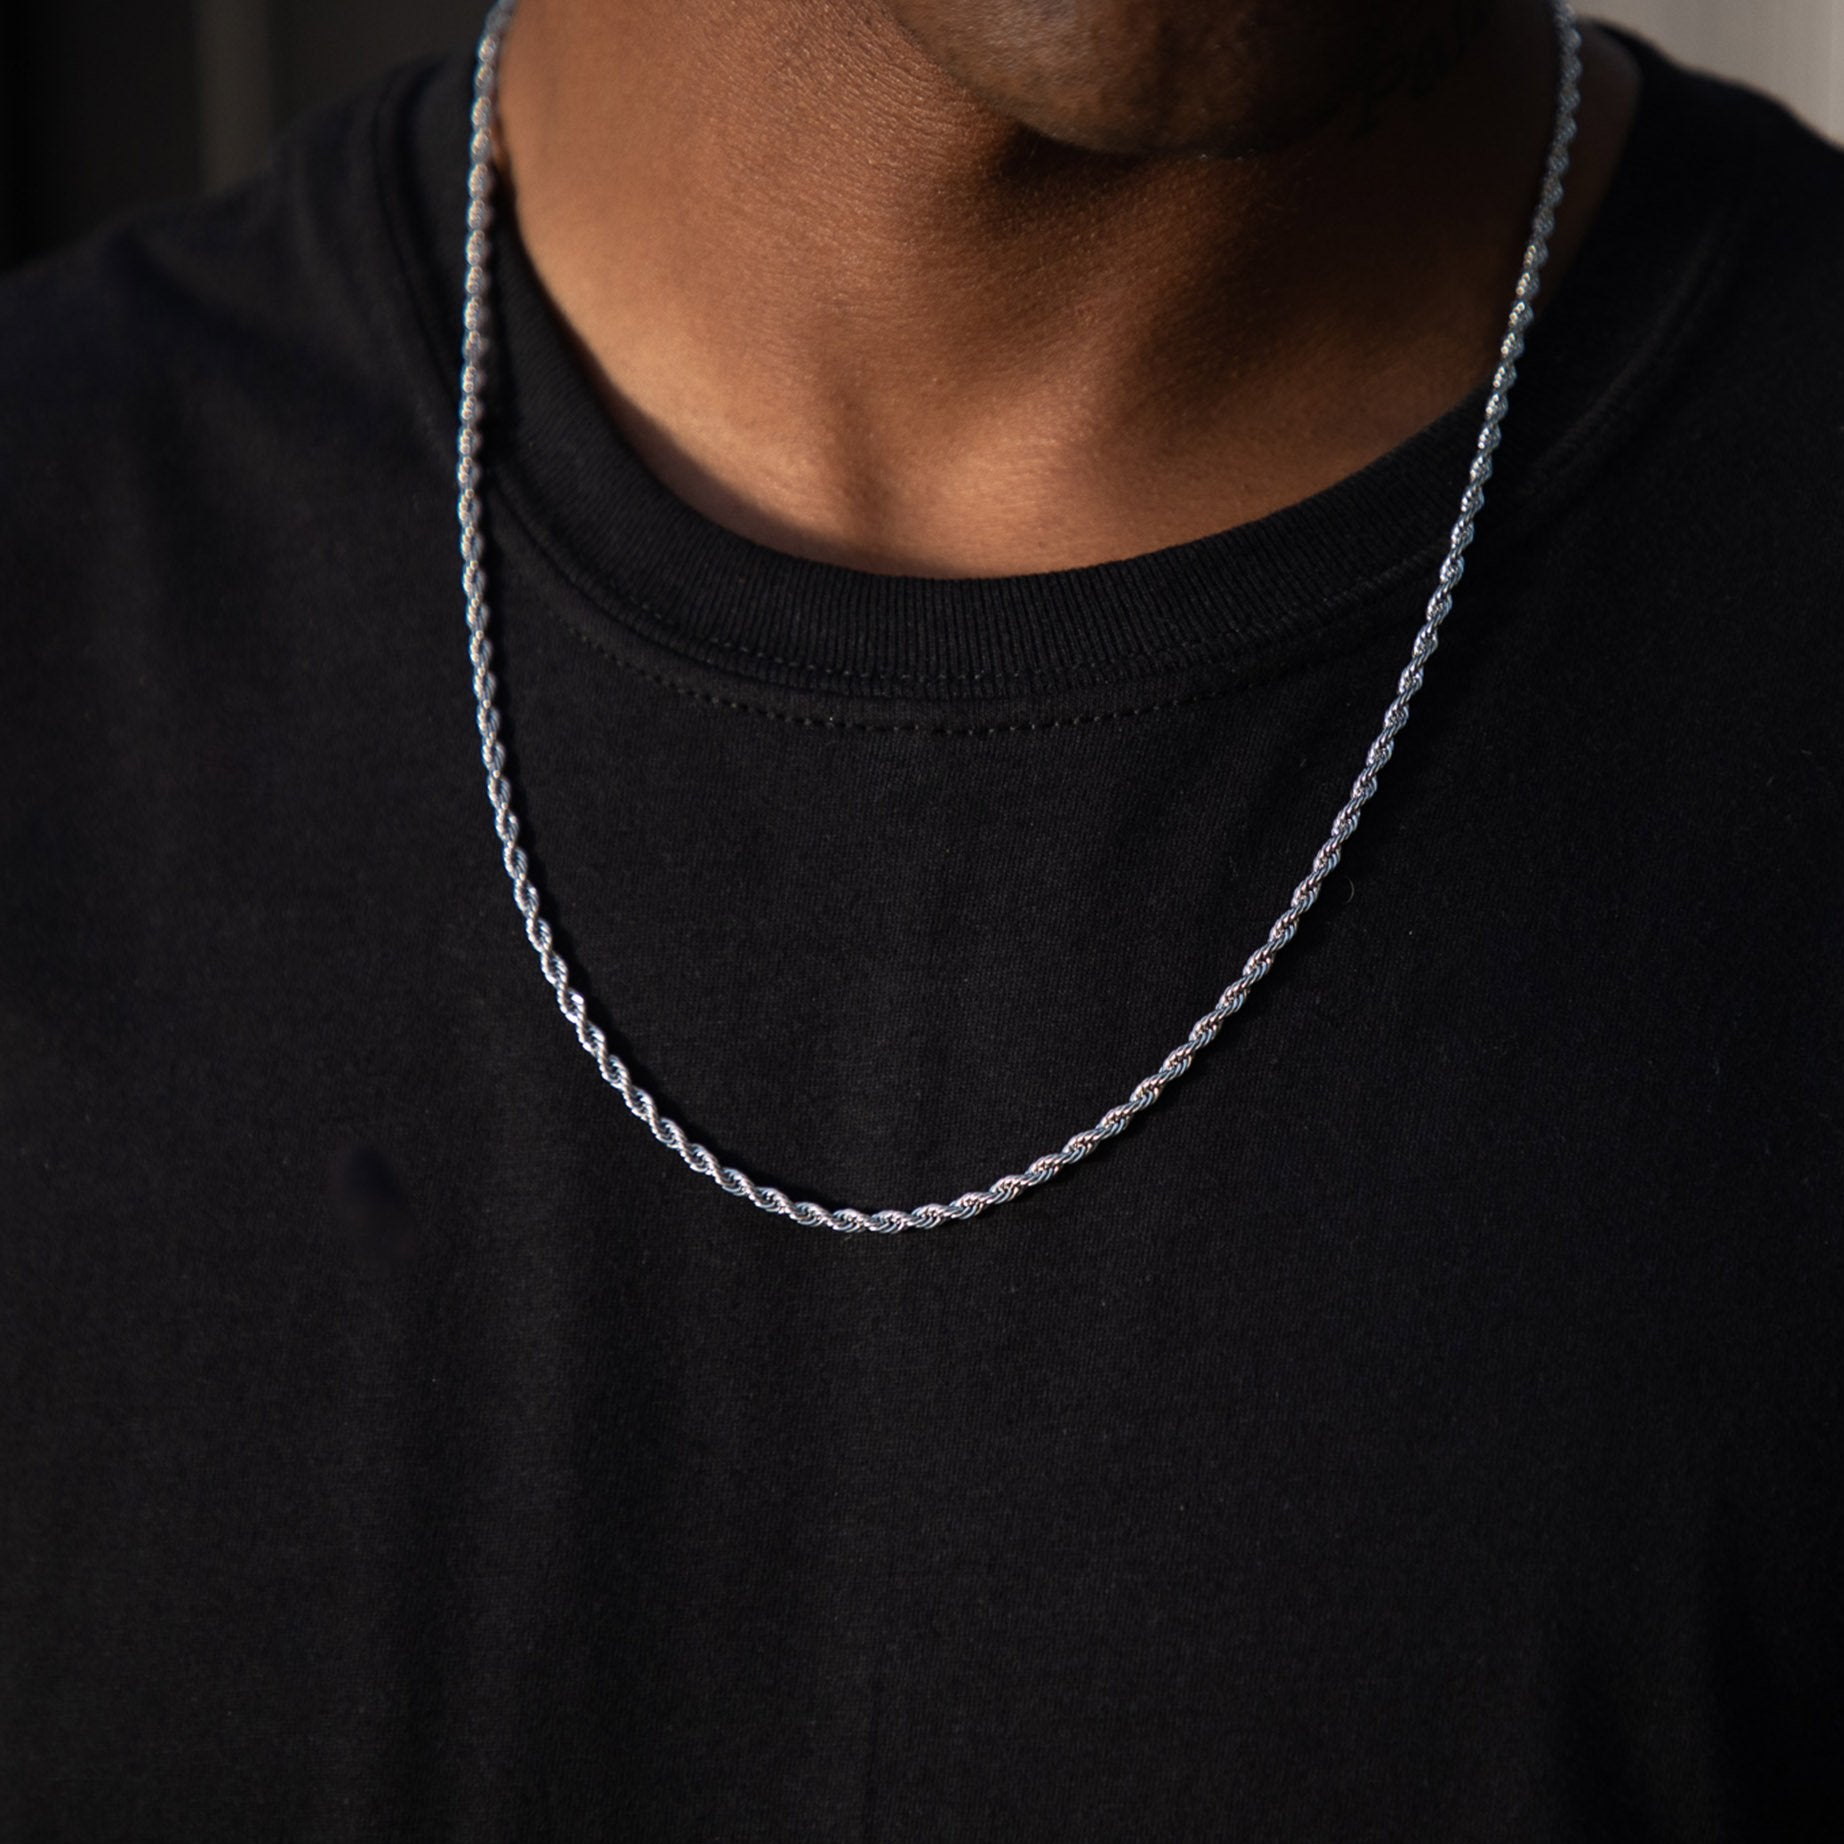 Classic Rope Chain in Silver - Got Drip - Jewelry - Ice - Jake Paul